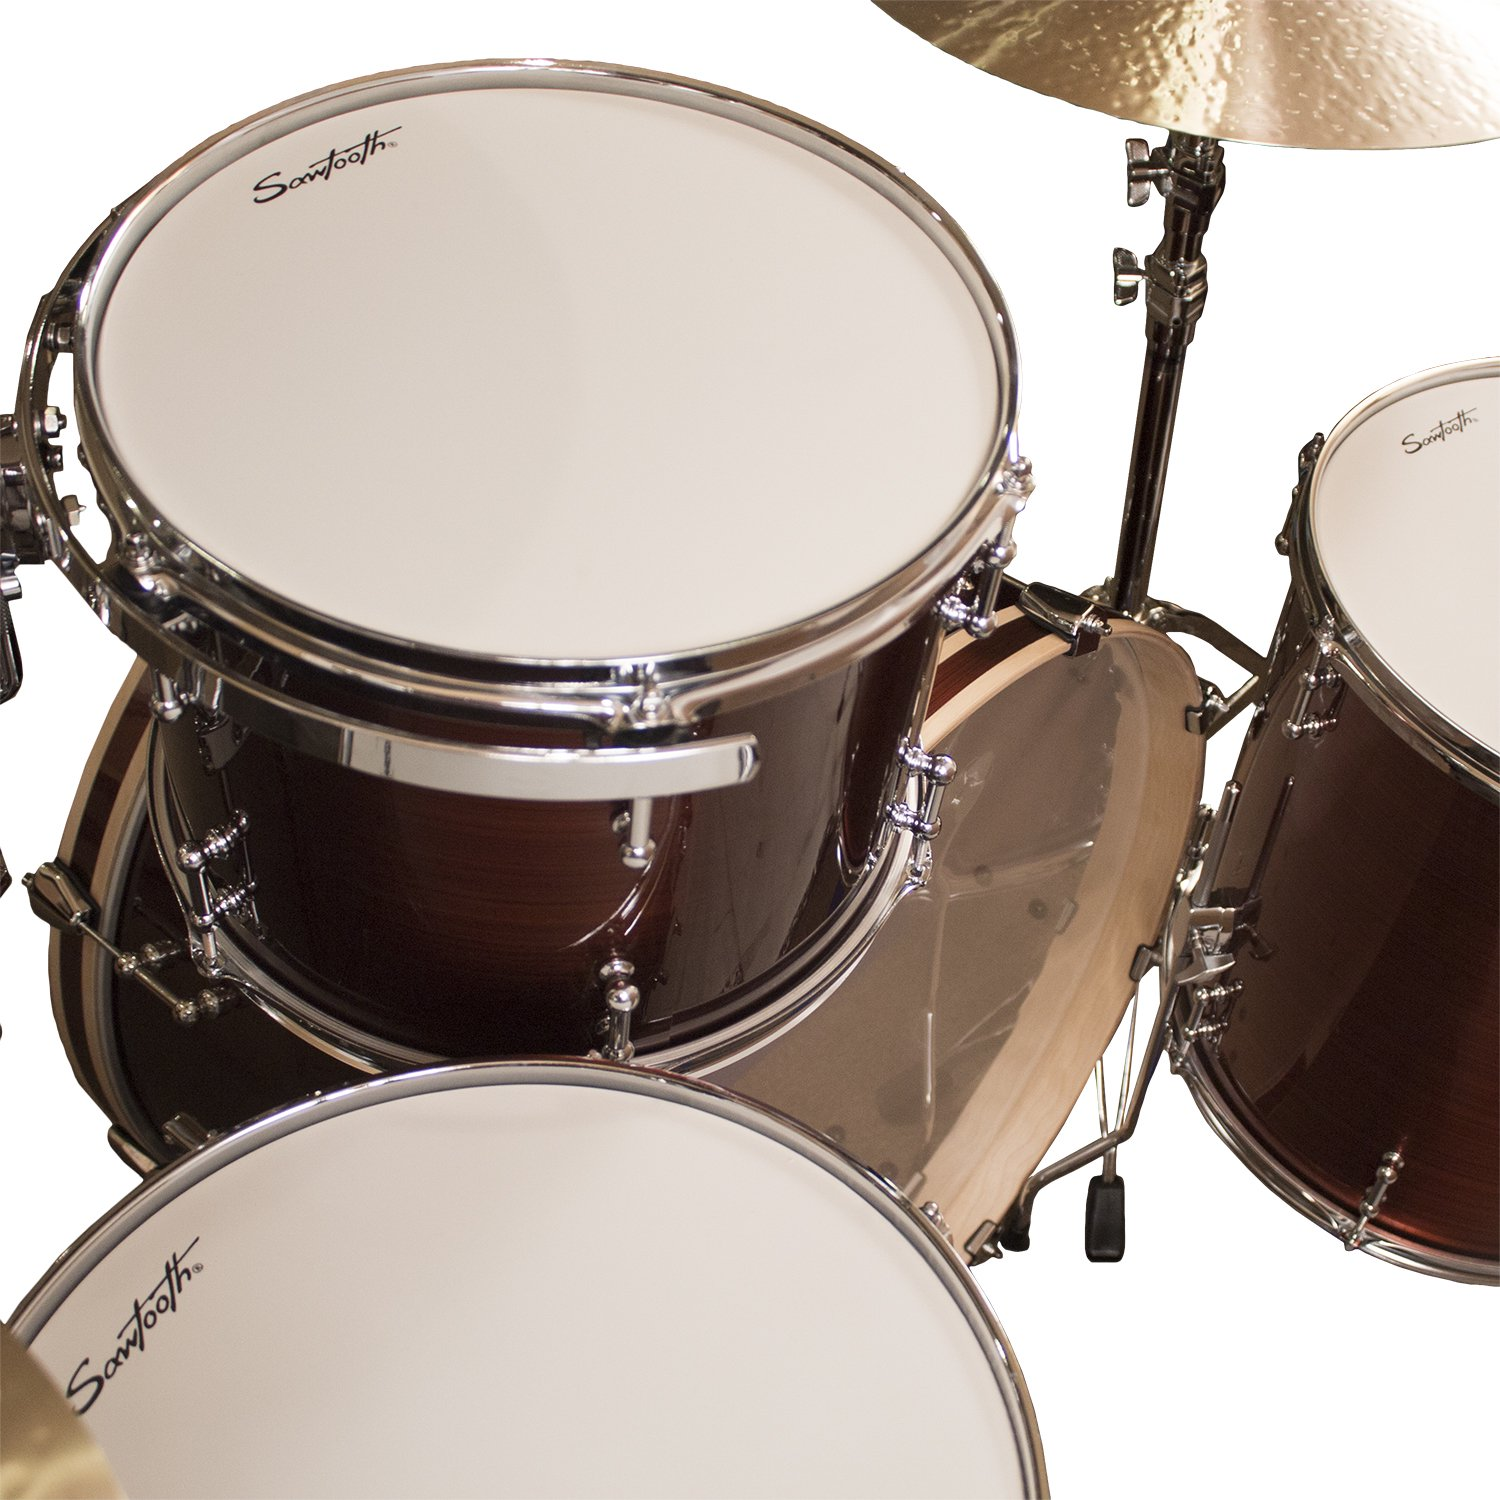 Buy Sawtooth Command Series 4-Piece Drum Set Shell Pack with 24